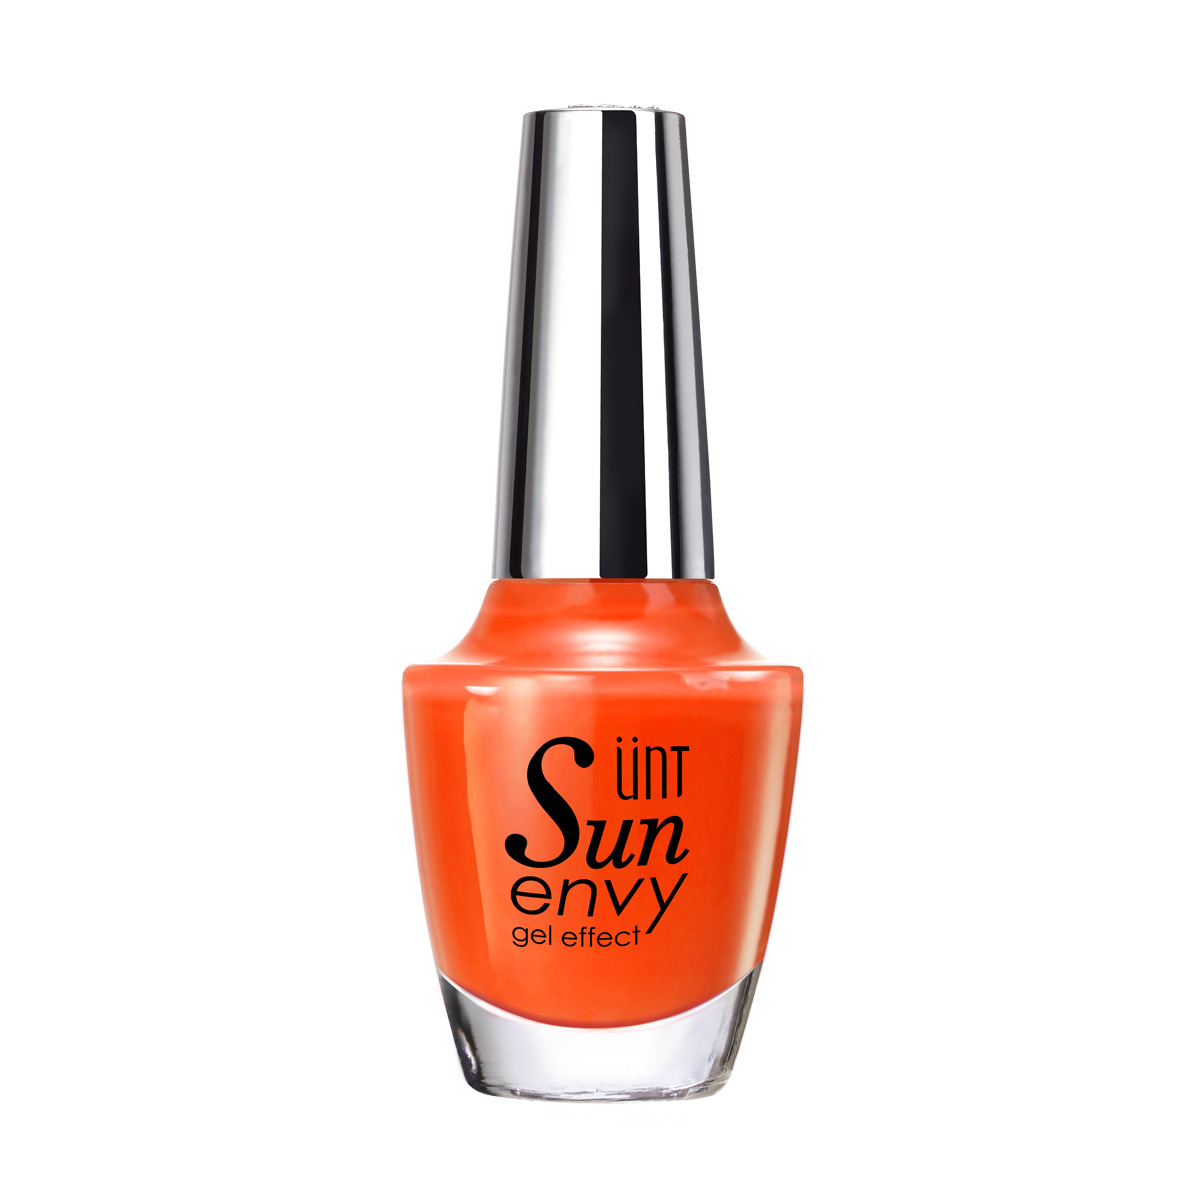 SUN ENVY GEL EFFECT - TOUCH OF THE SUN